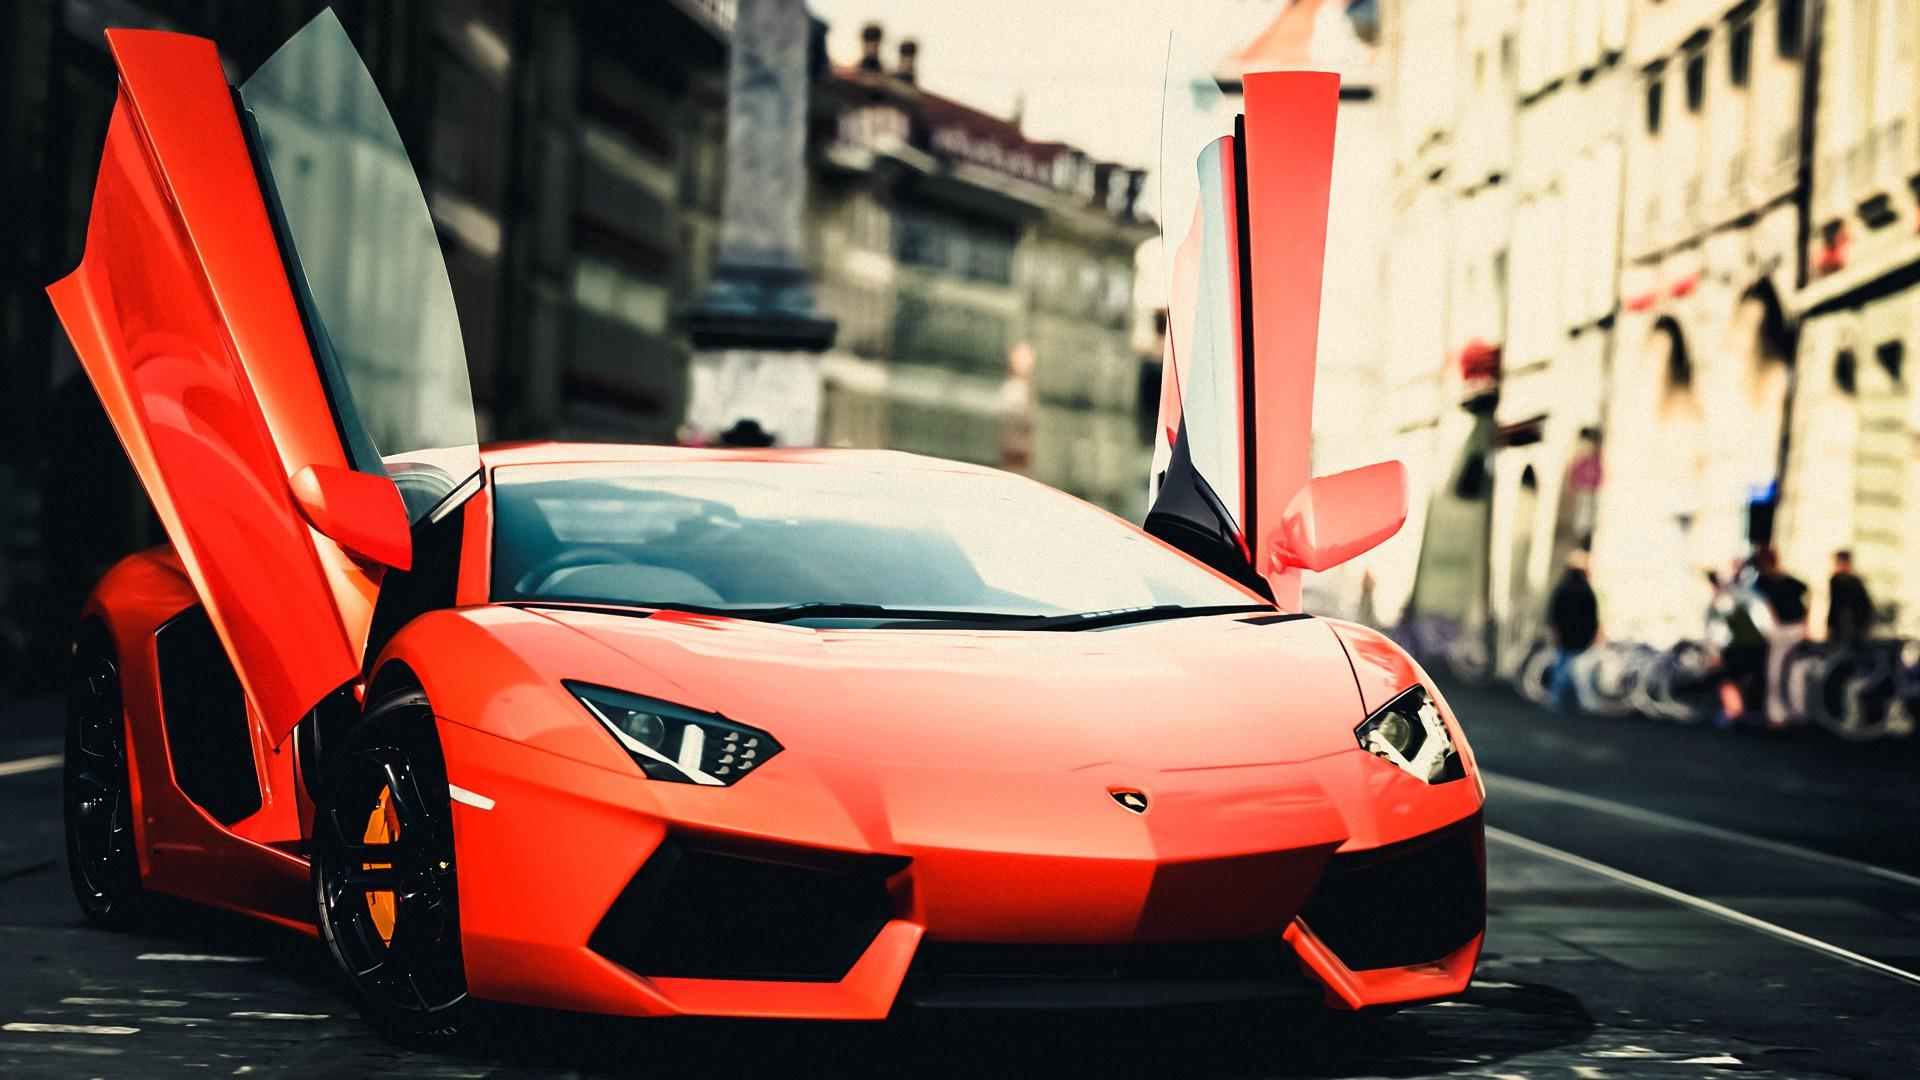 supercar-lamborghini-wallpapers-background | wallpaper.wiki